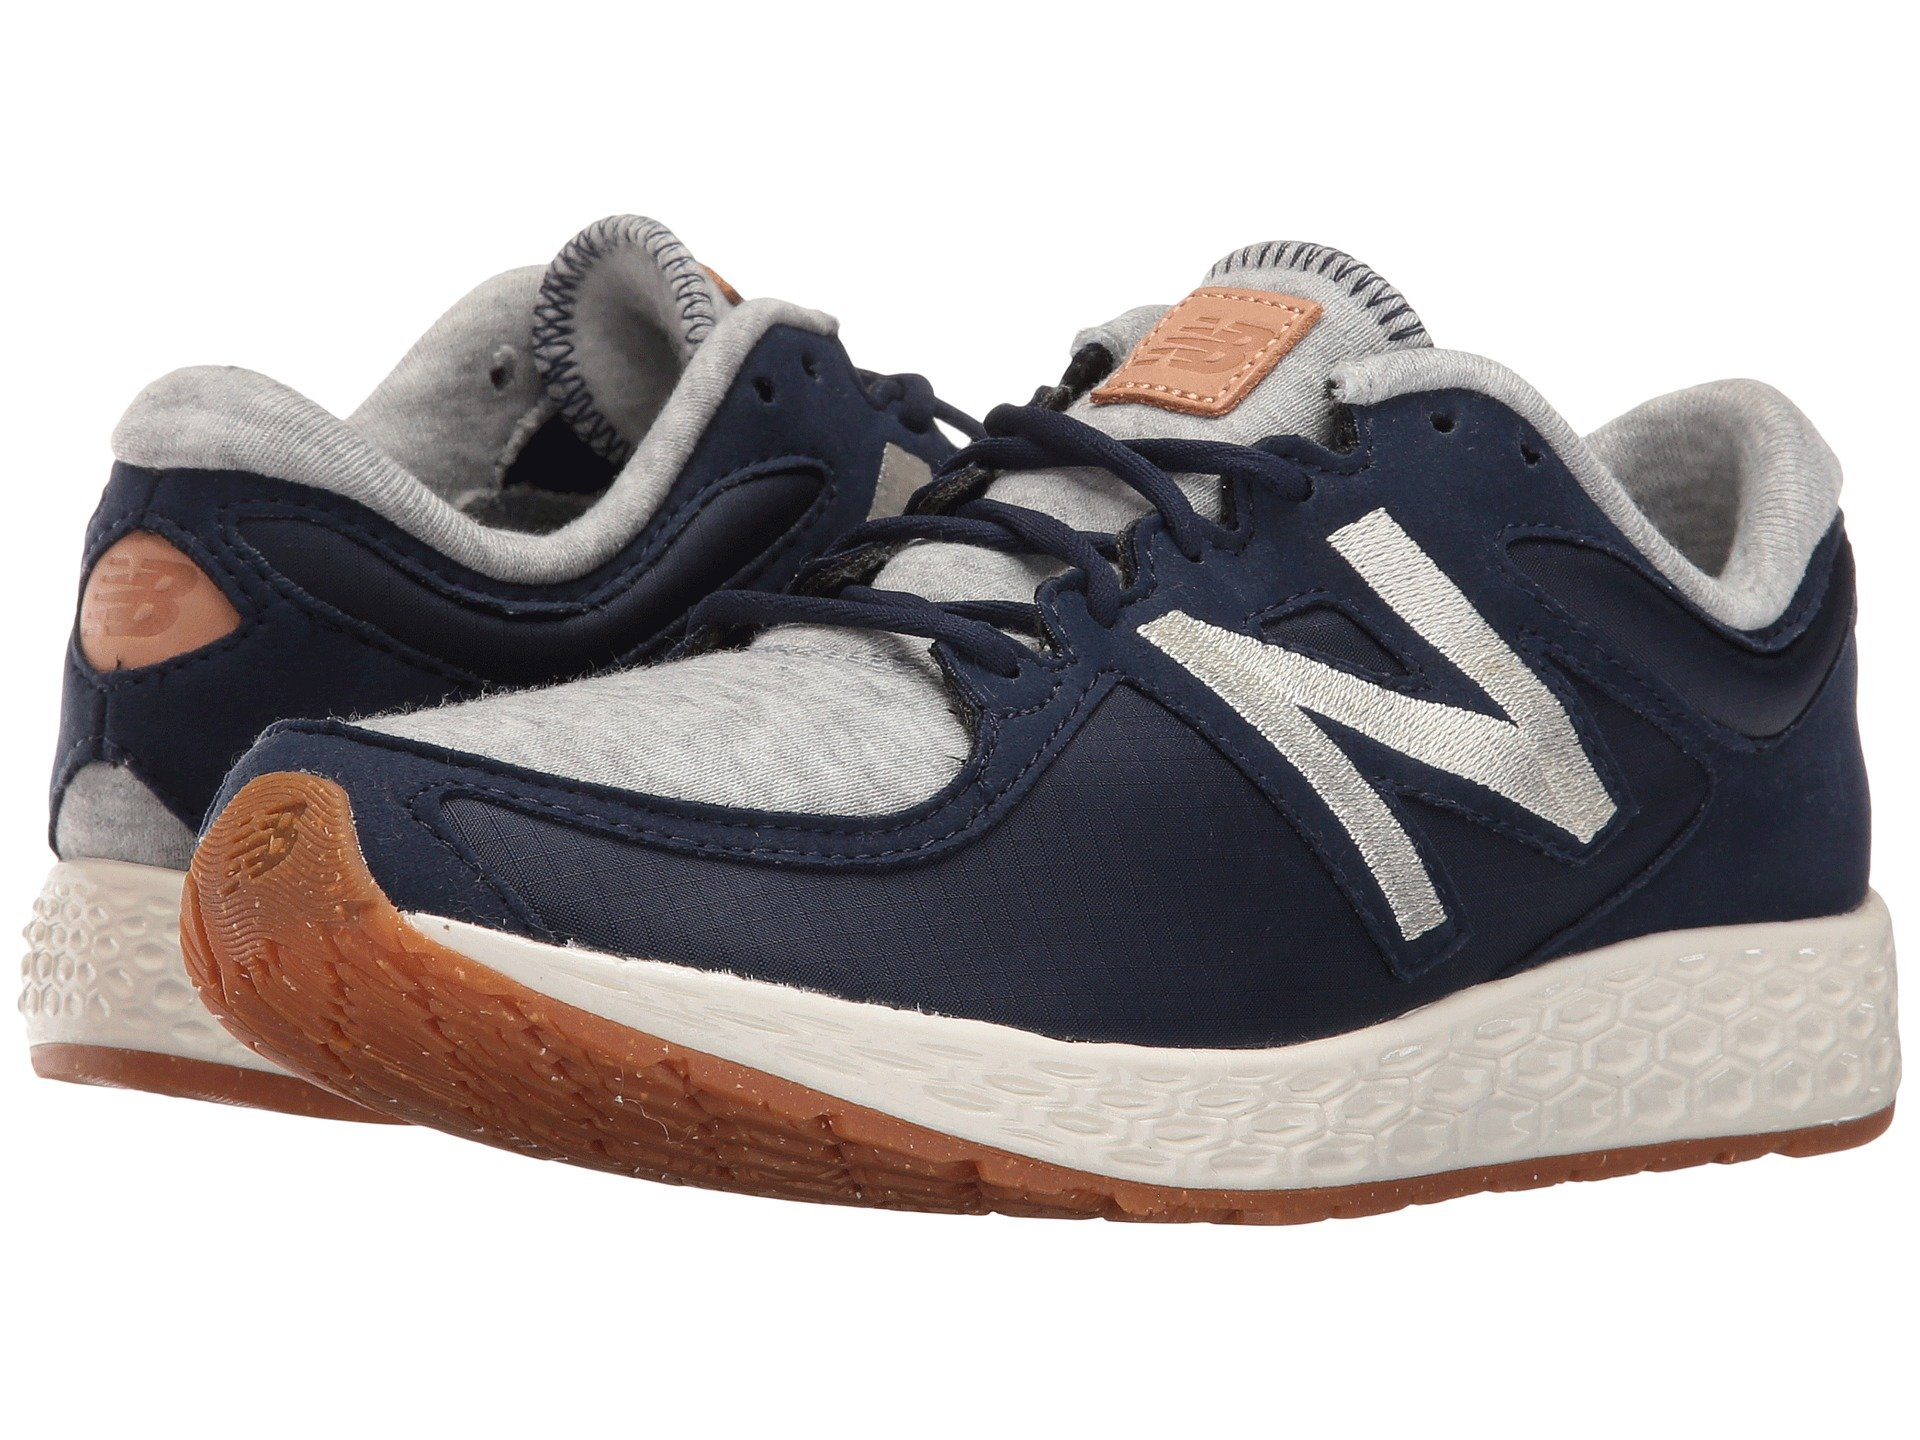 New Balance Classics, Sneakers & Athletic Shoes, Women | Shipped Free at  Zappos